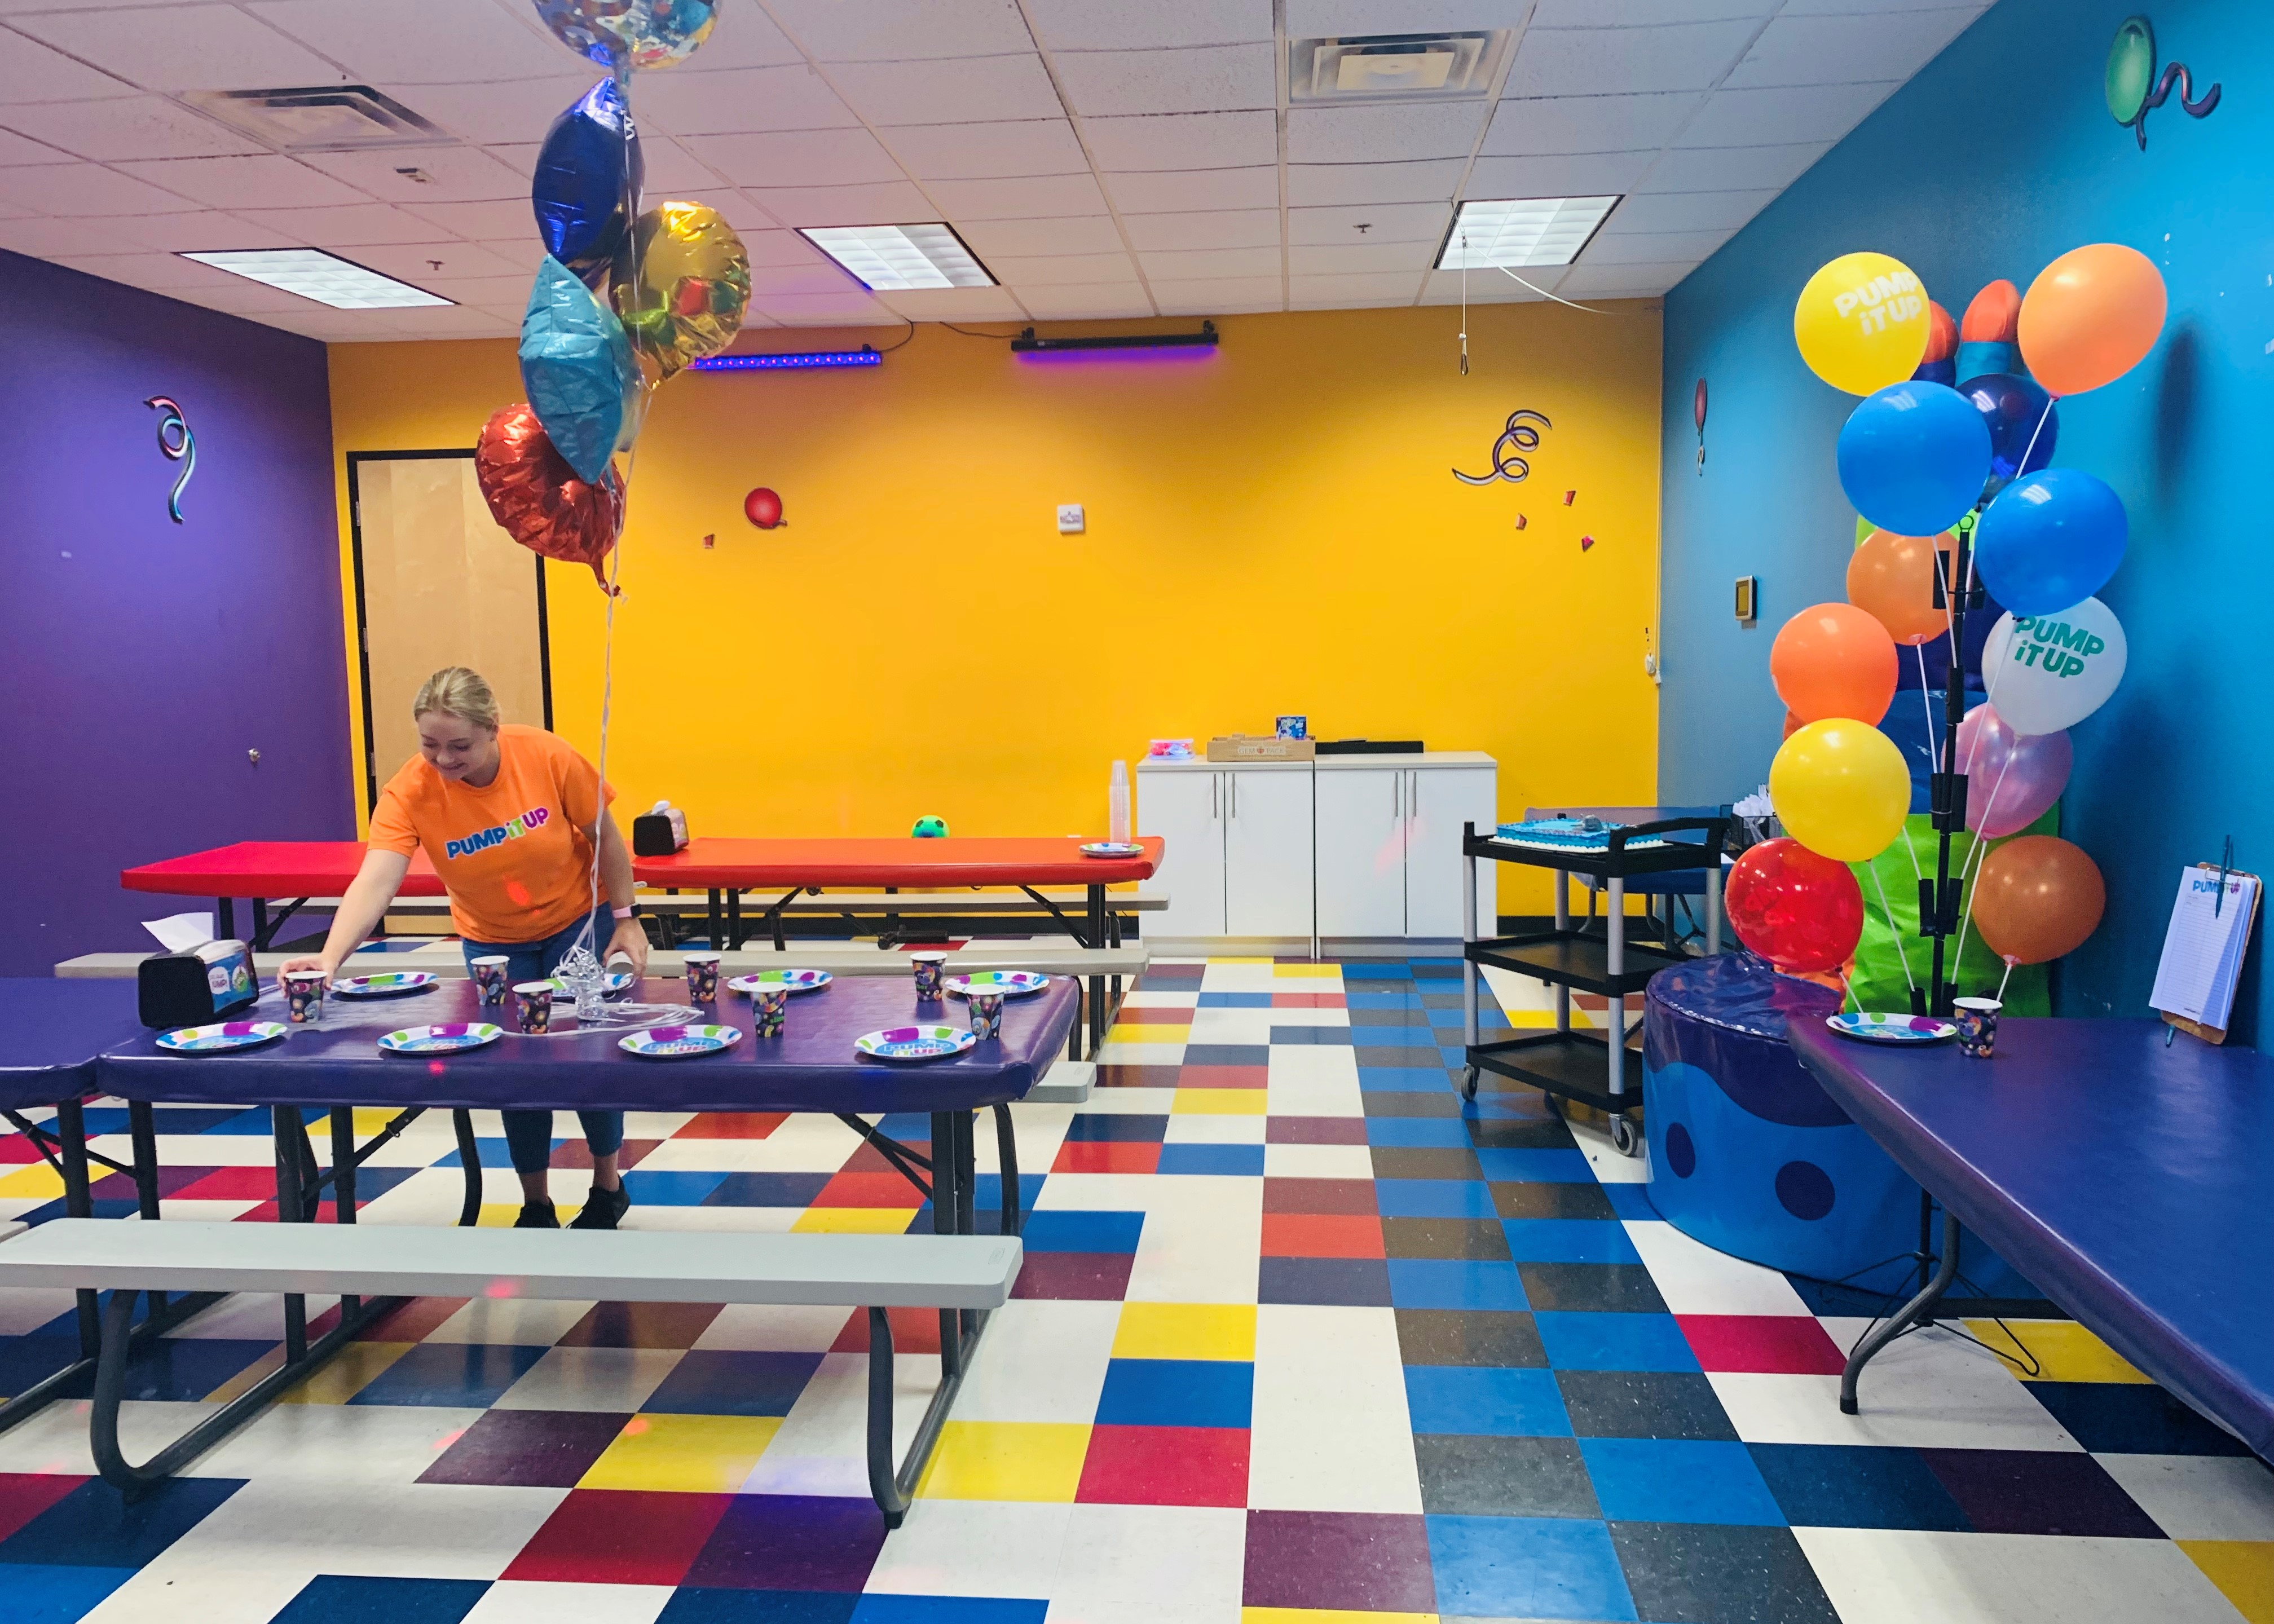 Pump It Up party room with staff setting up table for private party.